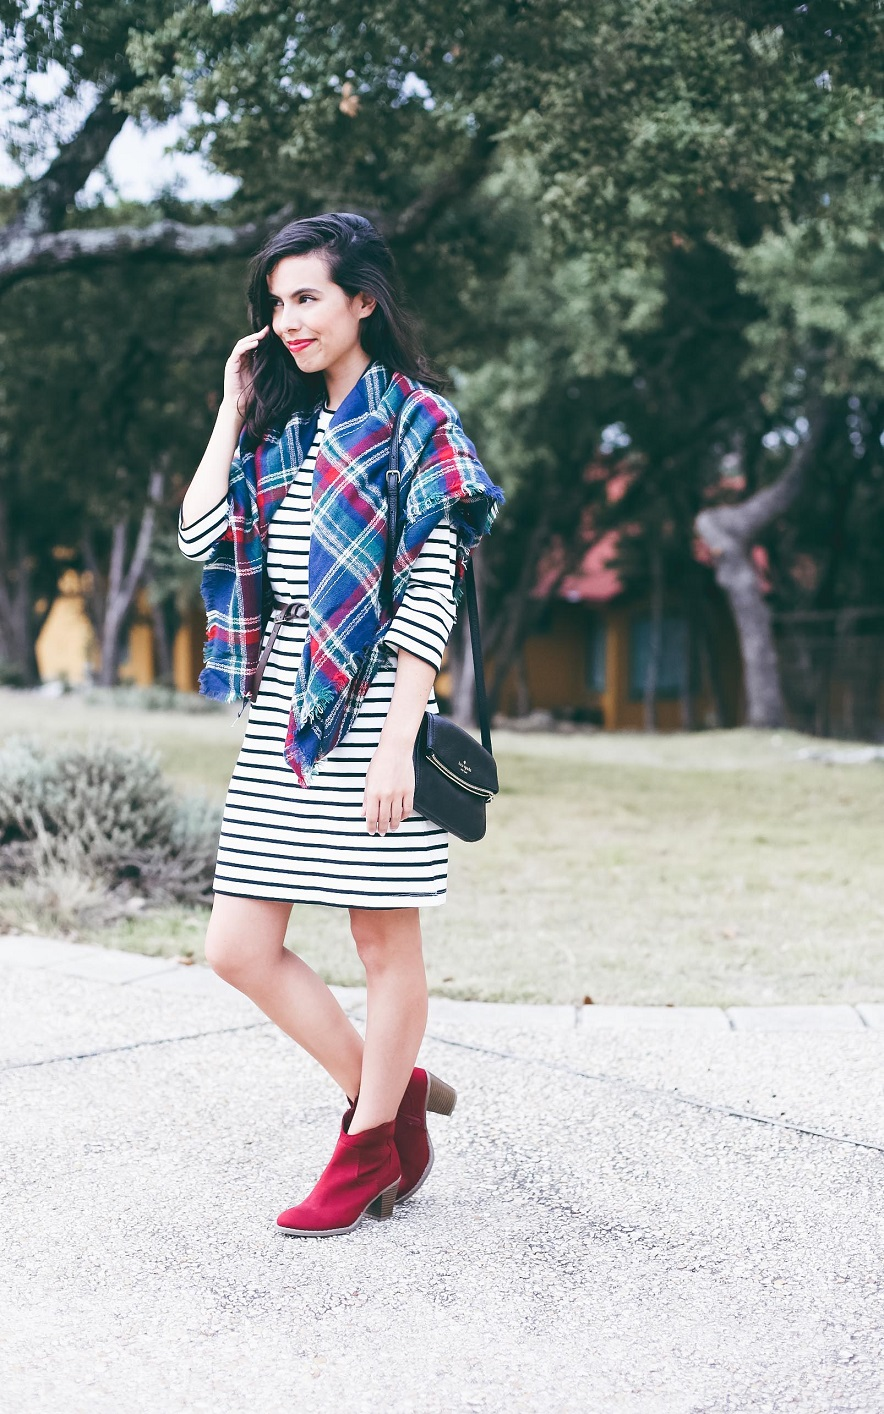 austin texas, austin fashion blog, austin fashion blogger, austin fashion, austin fashion blog, pinterest outfit, off the shoulder dress, austin style, austin style blog, austin style blogger, austin style bloggers, style bloggers, plaid scarf, how to wear a blanket scarf, plaid blanket scarf, blanket scarf